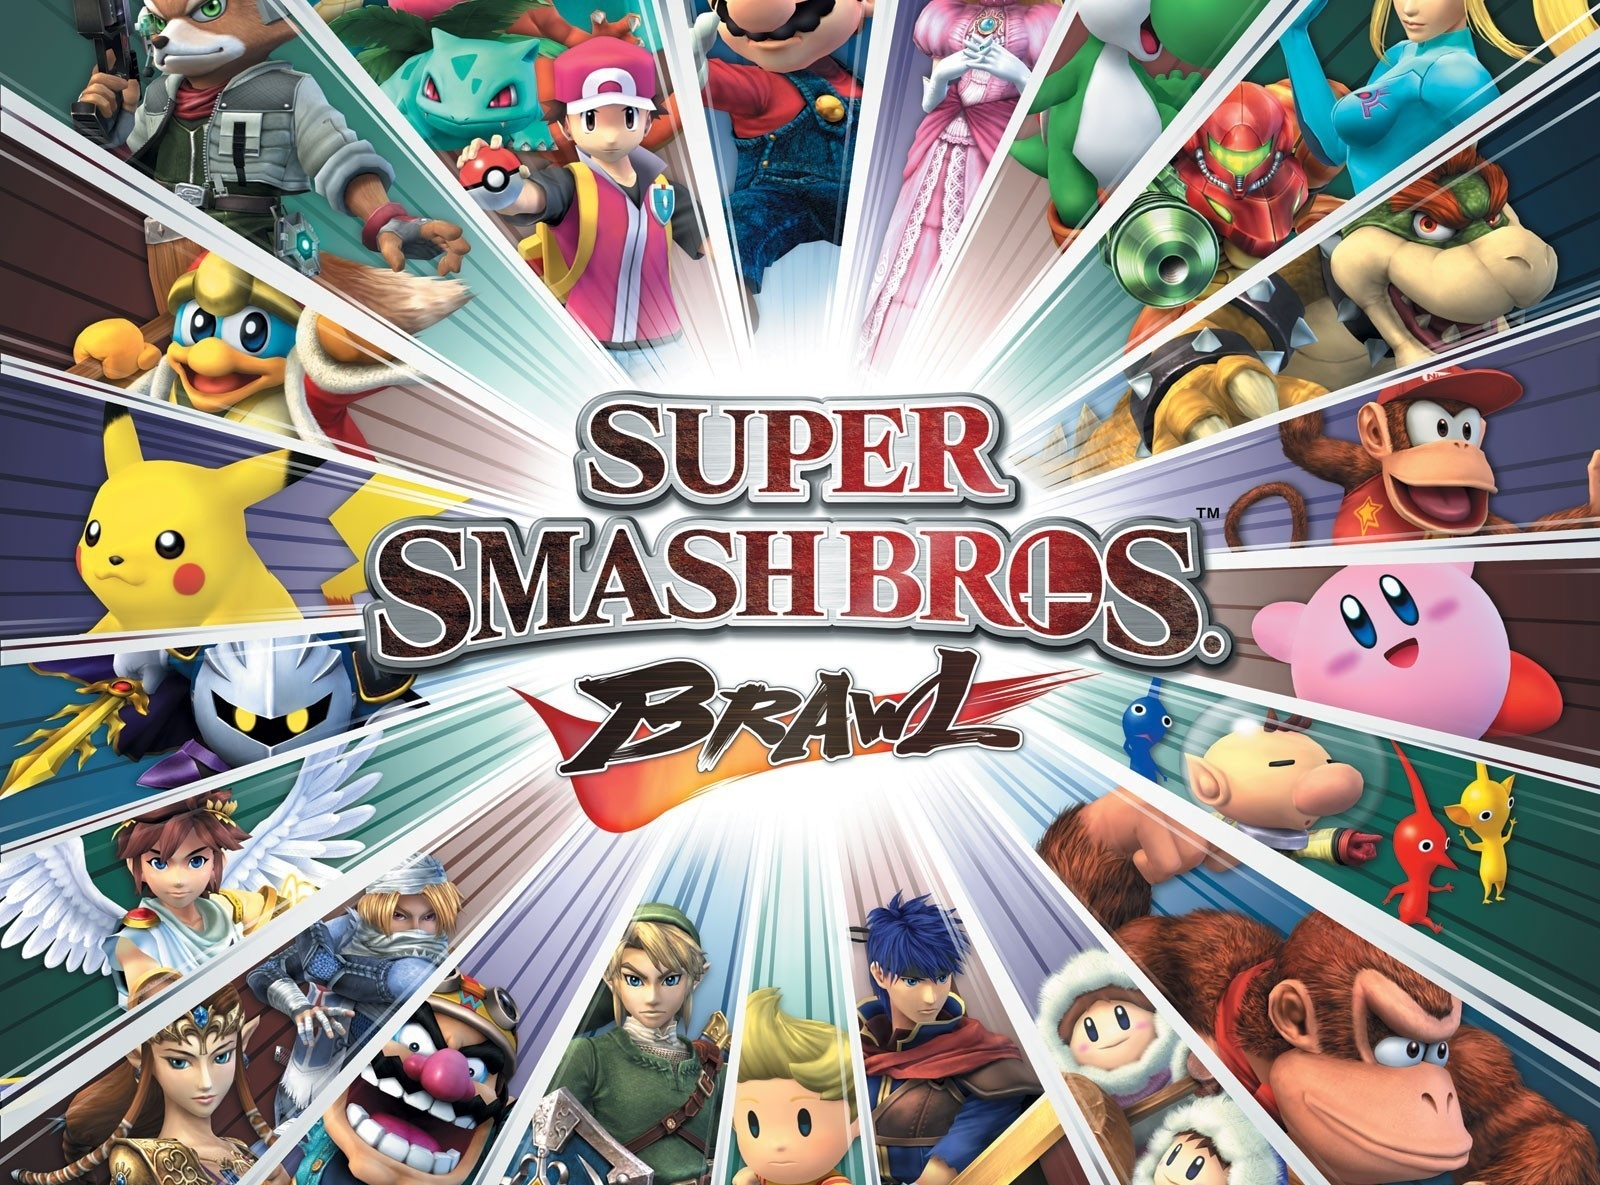 Super Smash Bros Super Smash Bros Brawl Ost 2536173 Hd